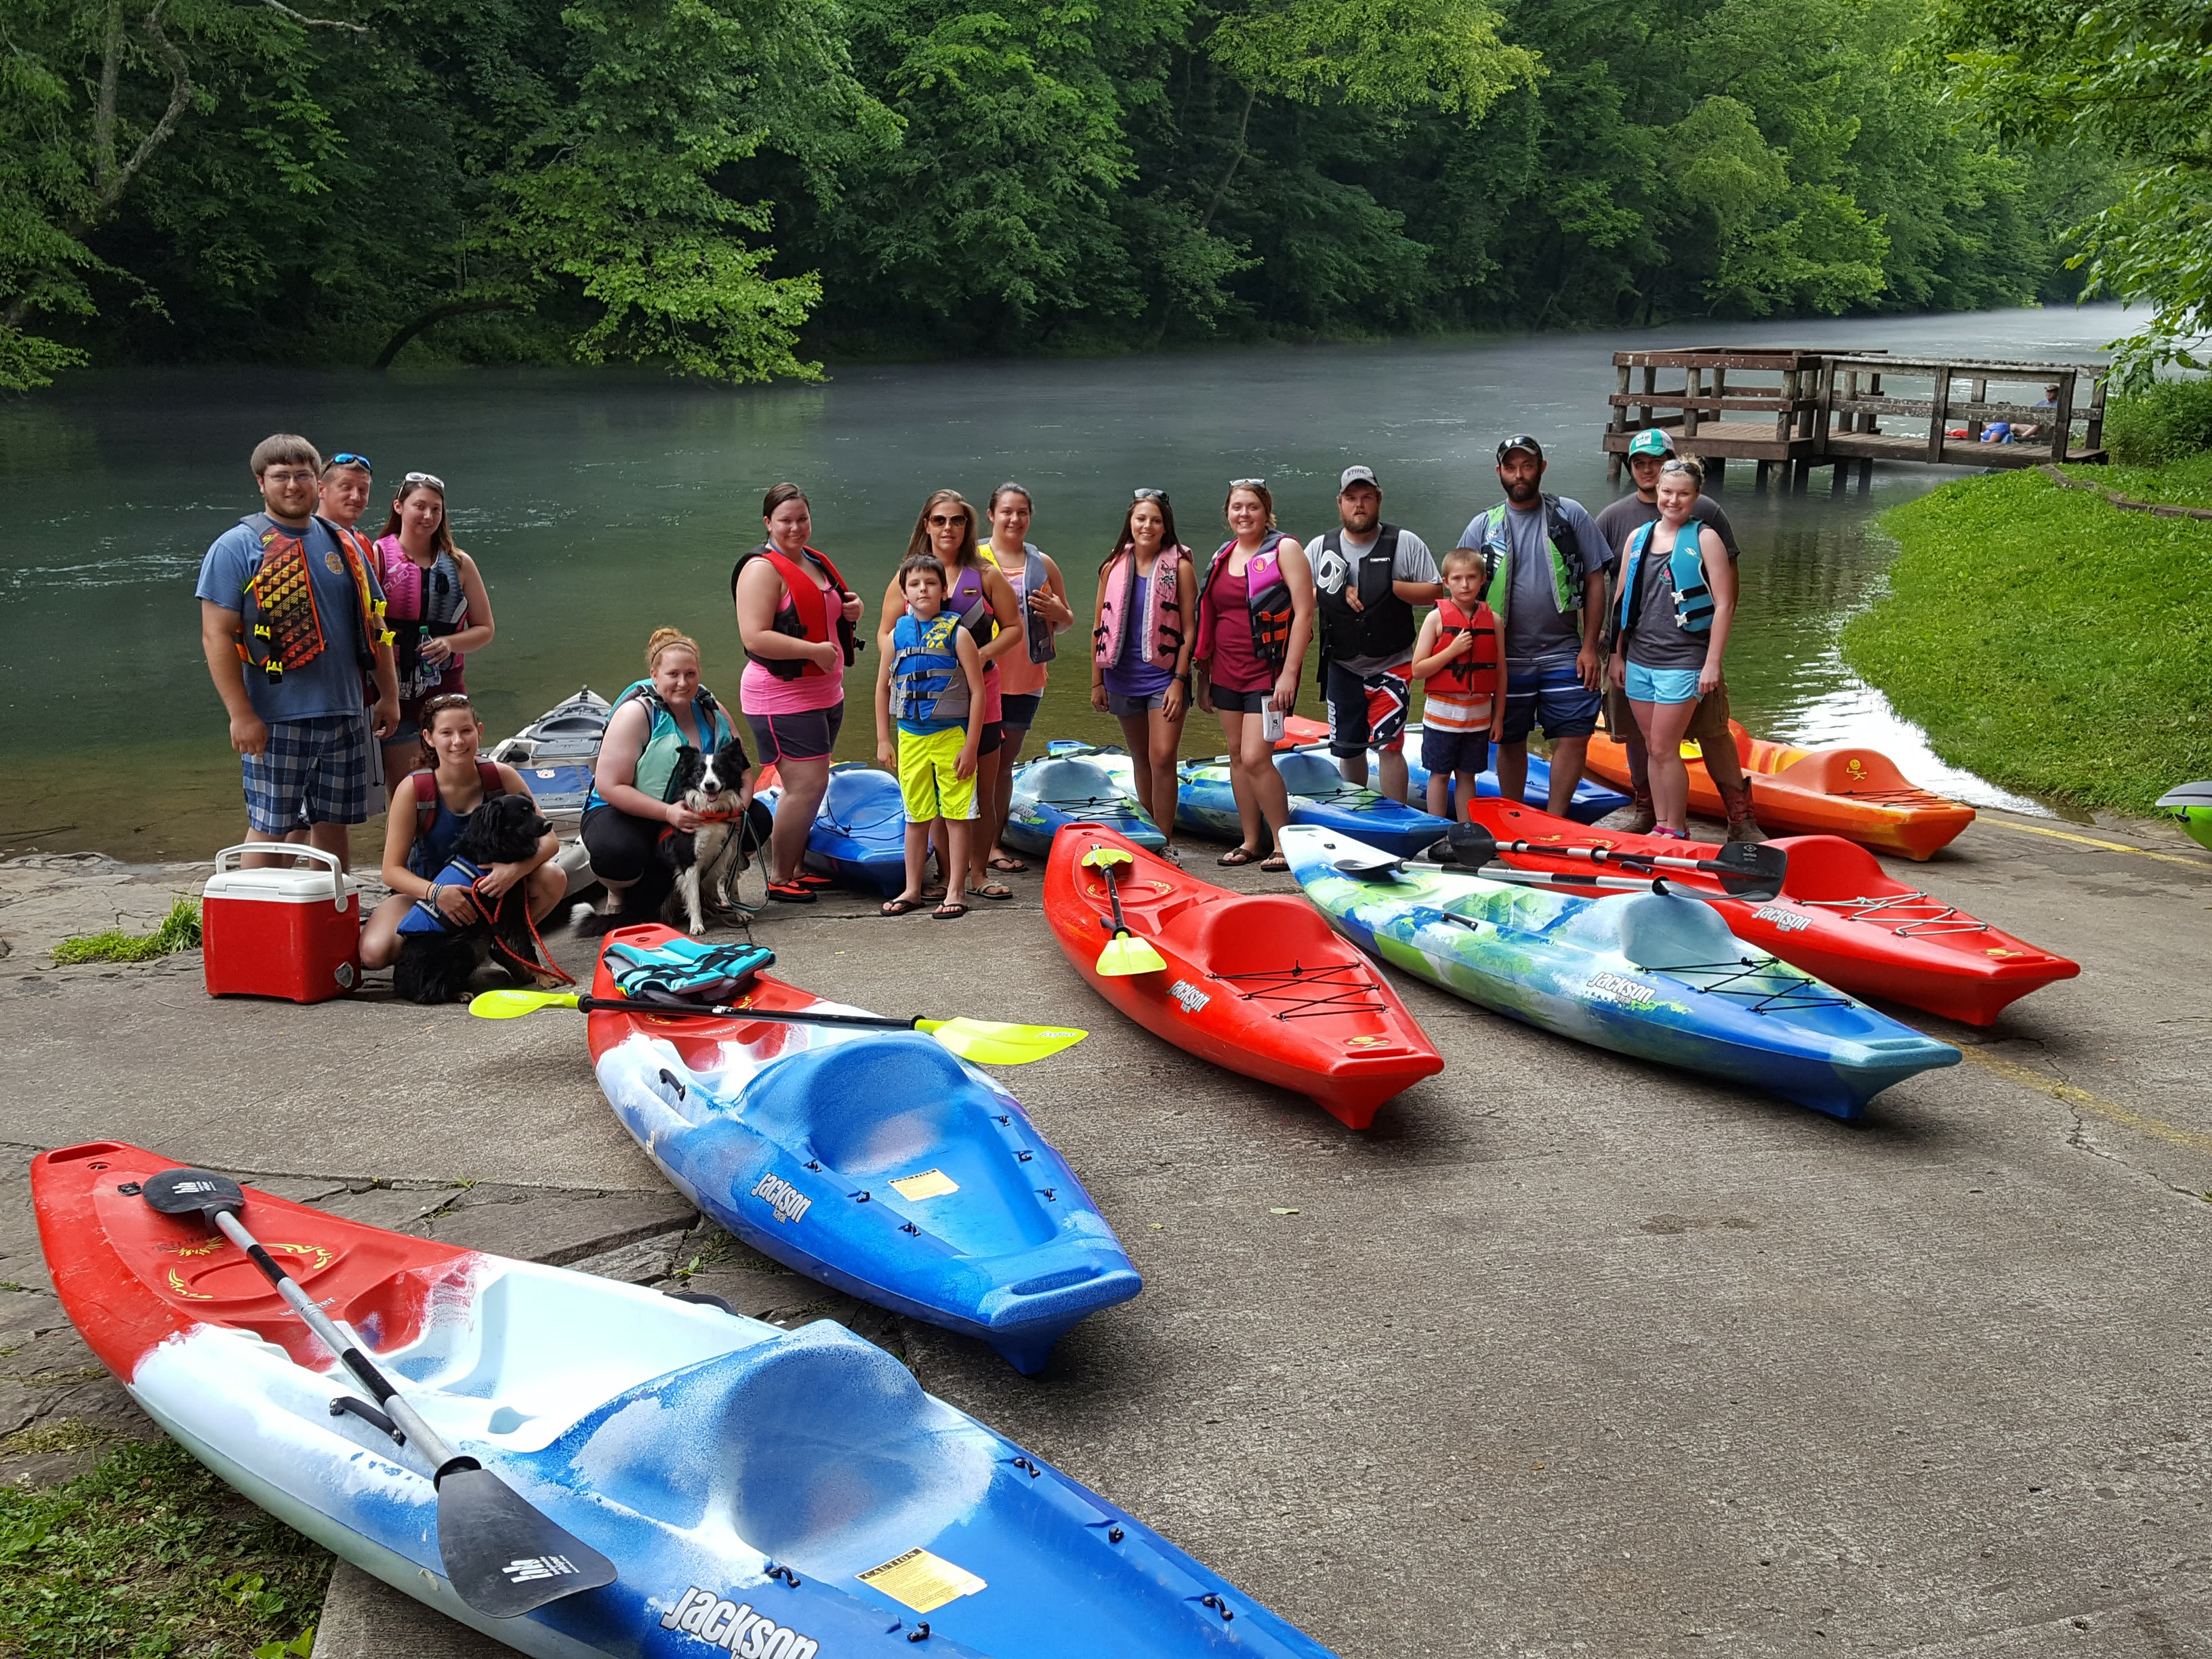 Kayak Rentals on the Obey River & Dale Hollow Lake